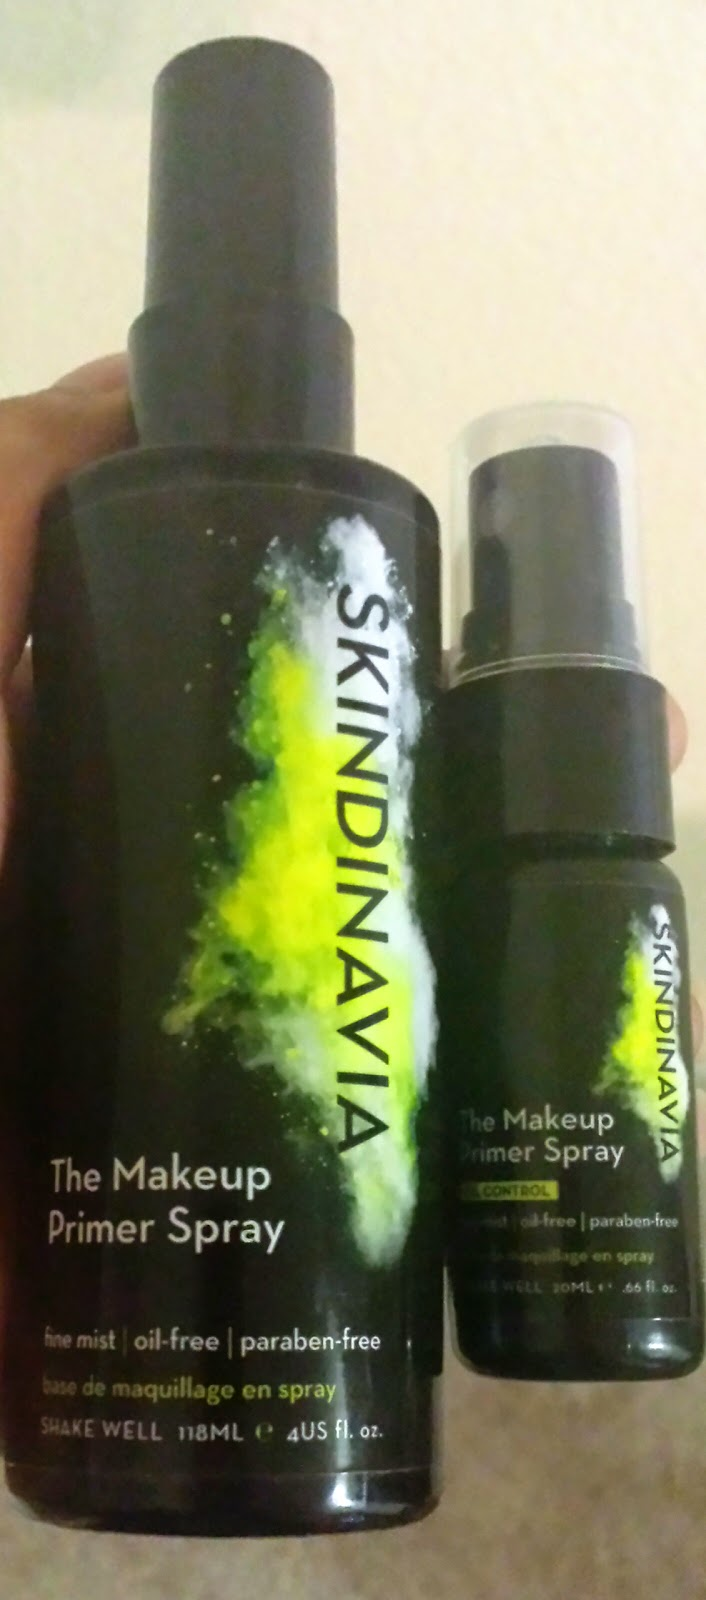 SKINDINAVIA's The Makeup Primer Spray and The Makeup Primer Spray Oil-Control Review and Giveaway Ends May 30th via ProductReviewMom.com